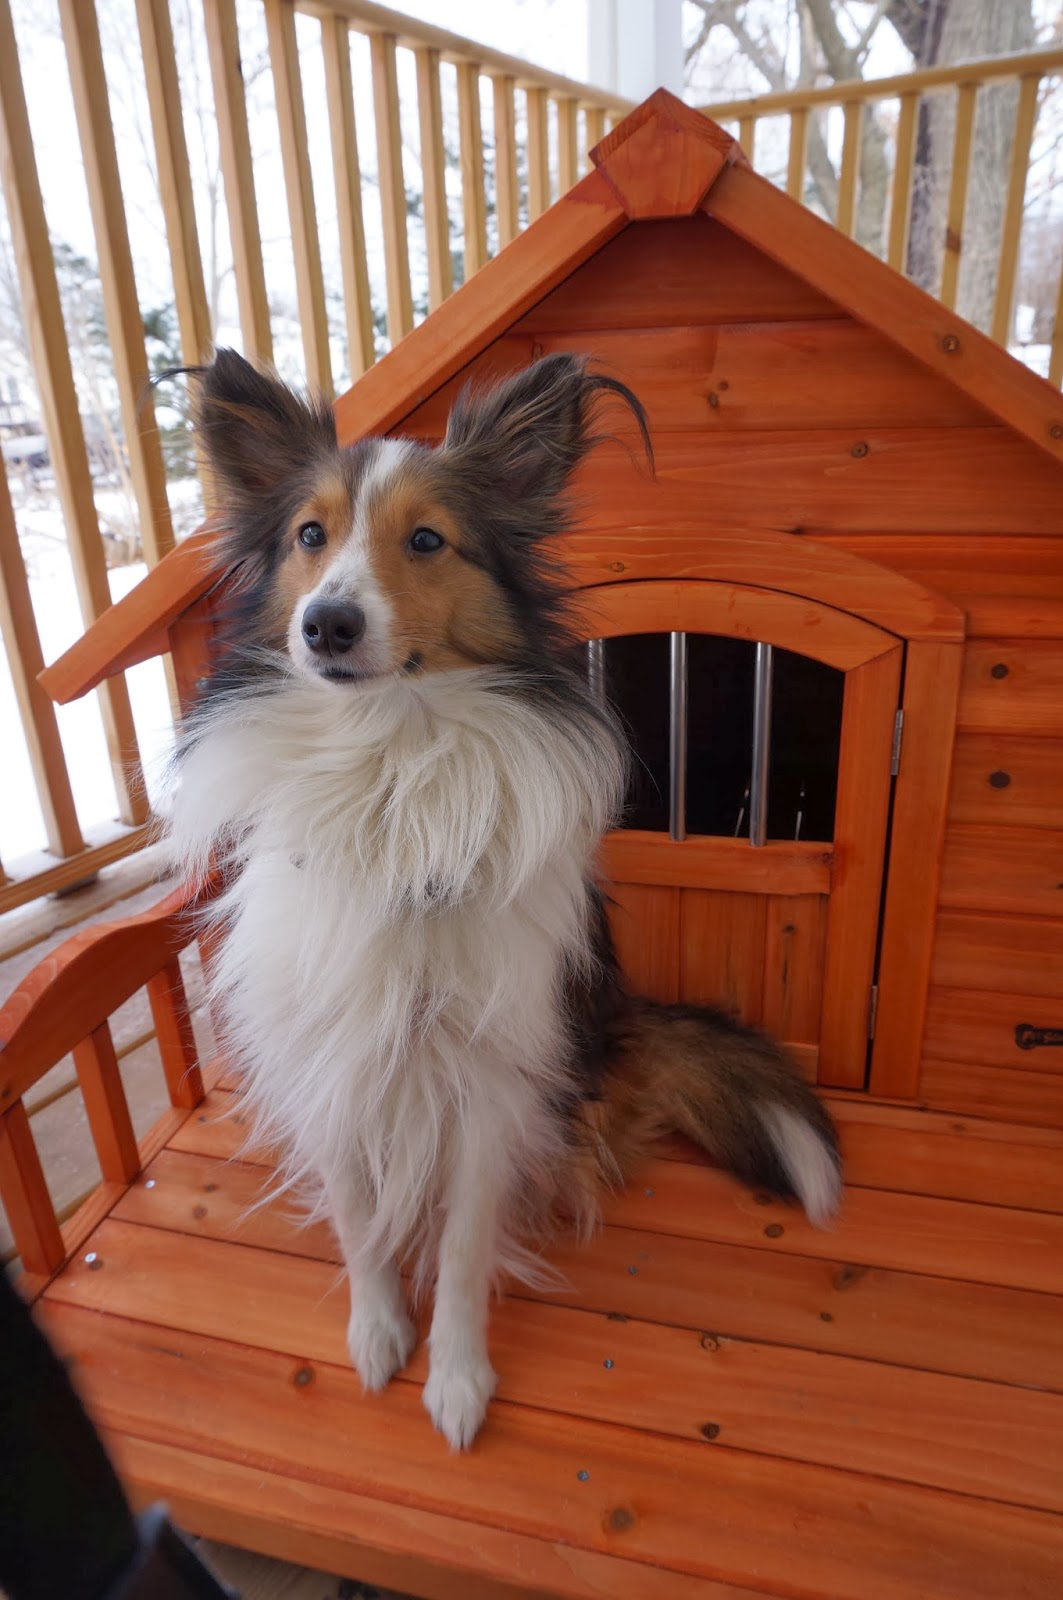 At the fence pet squeak porch pups dog house for Pet squeak dog house